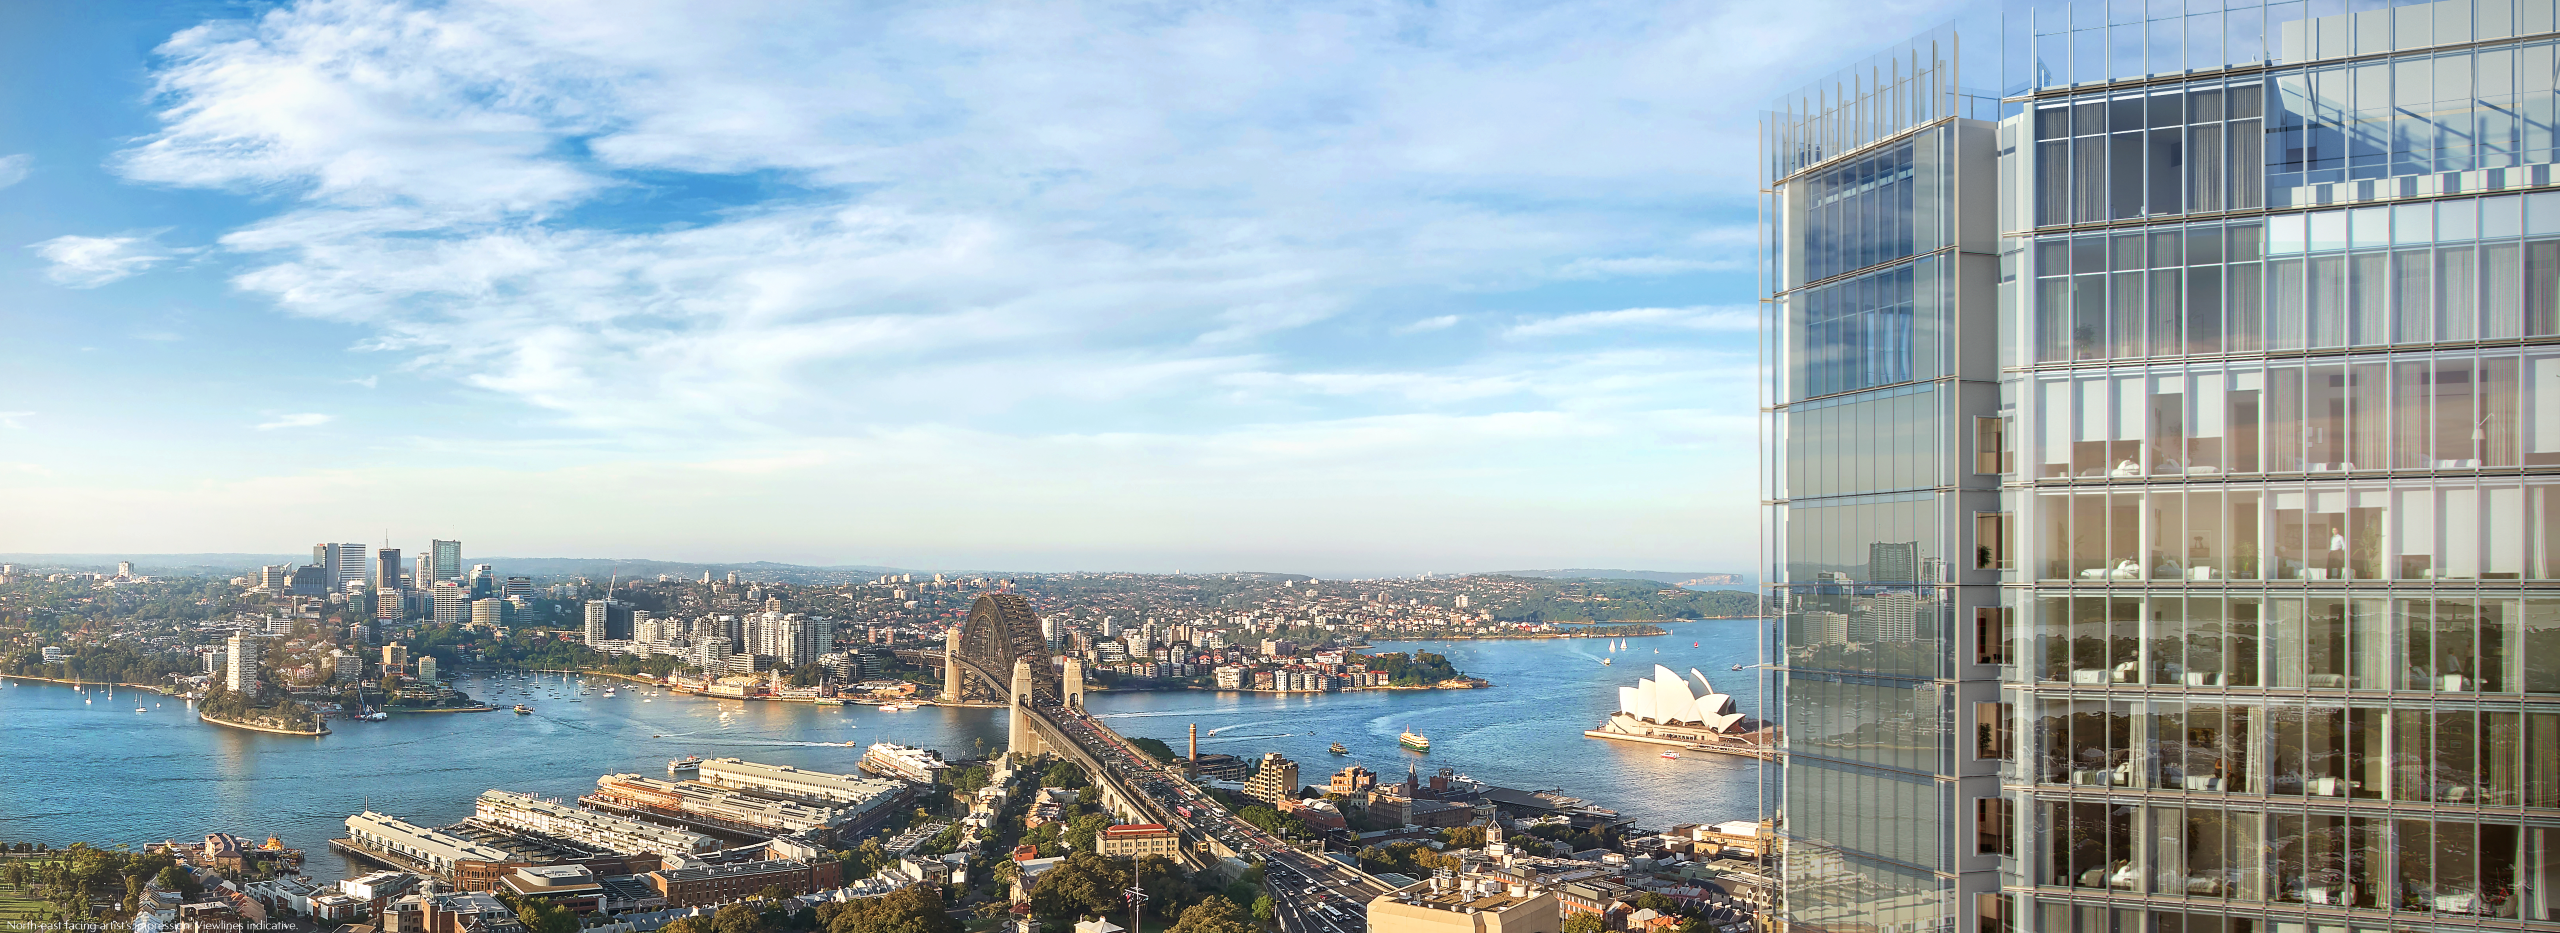 A digital twin was created for Renzo Piano's One Sydney Harbour